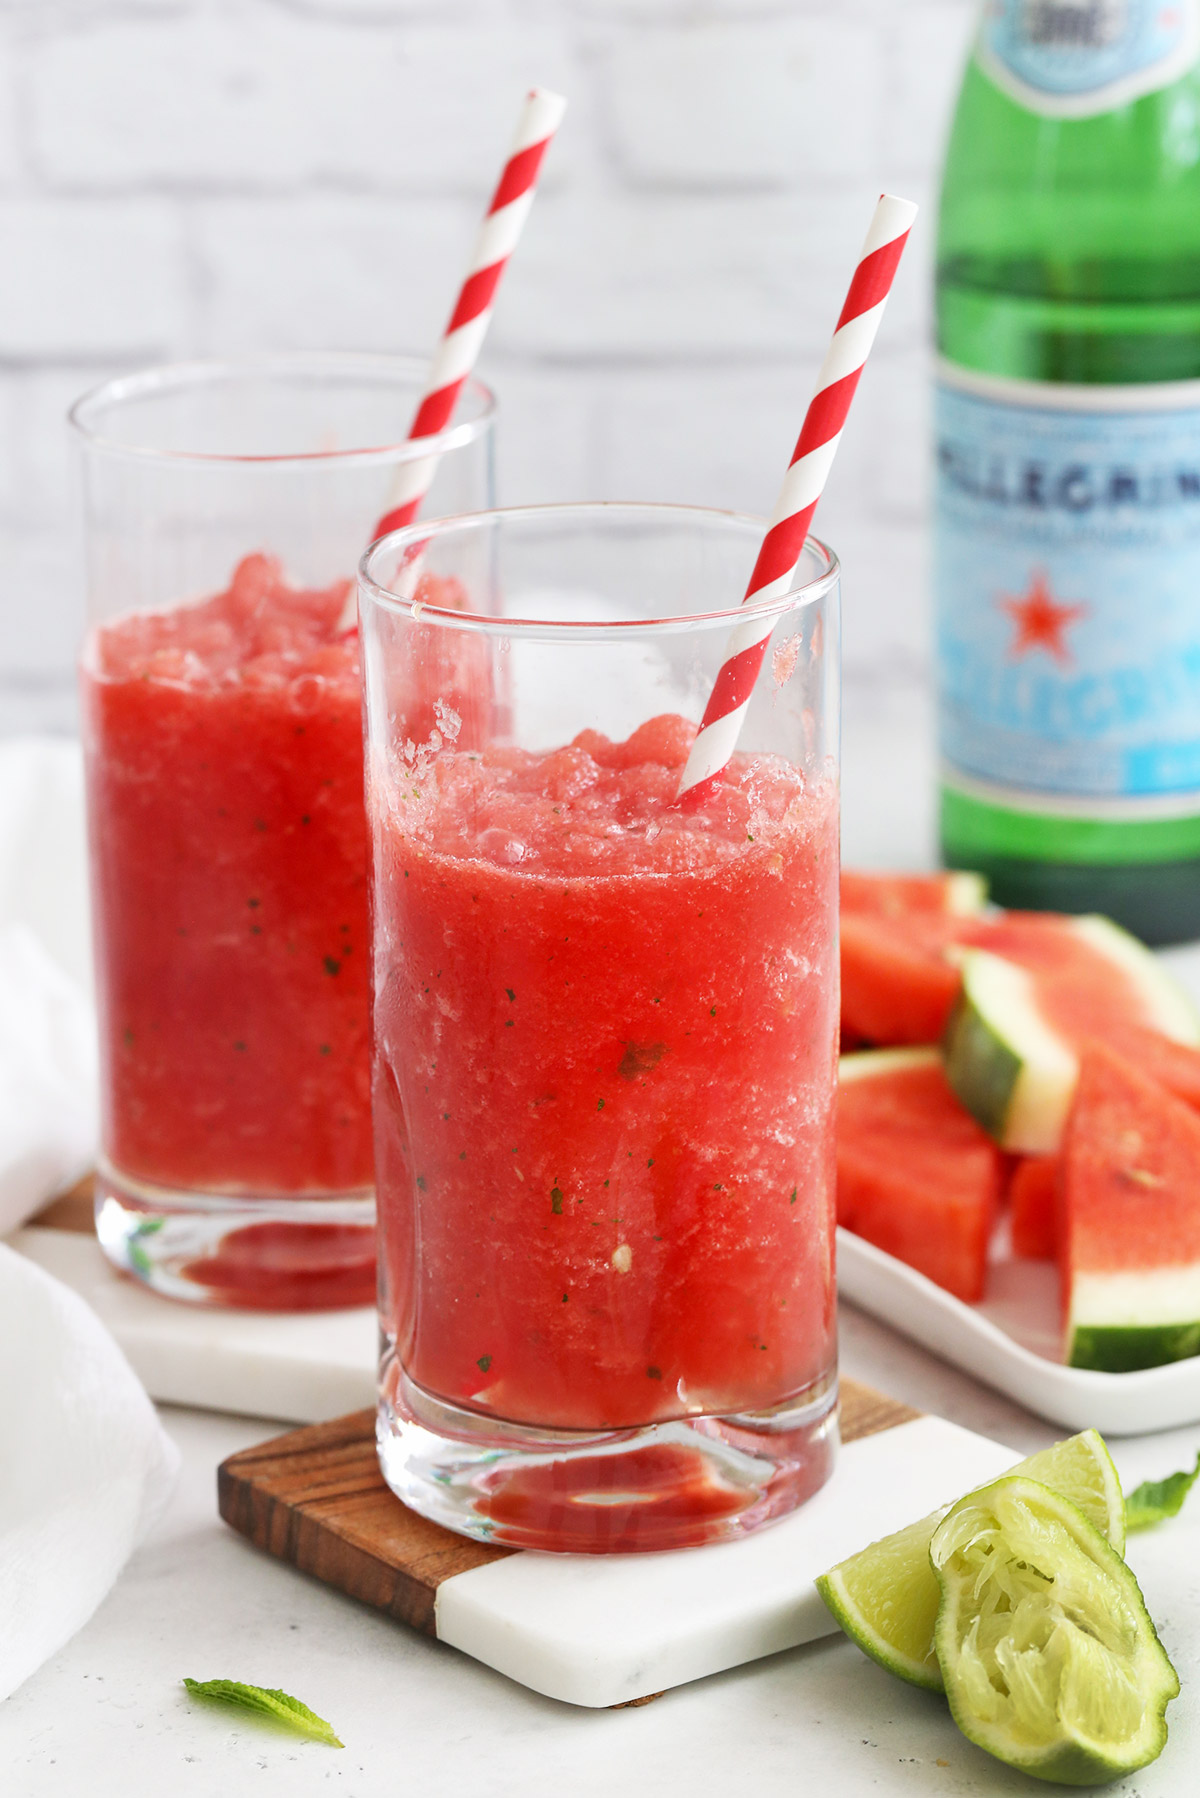 Front View of Watermelon Slushies in Glasses with Red and White Striped Straws